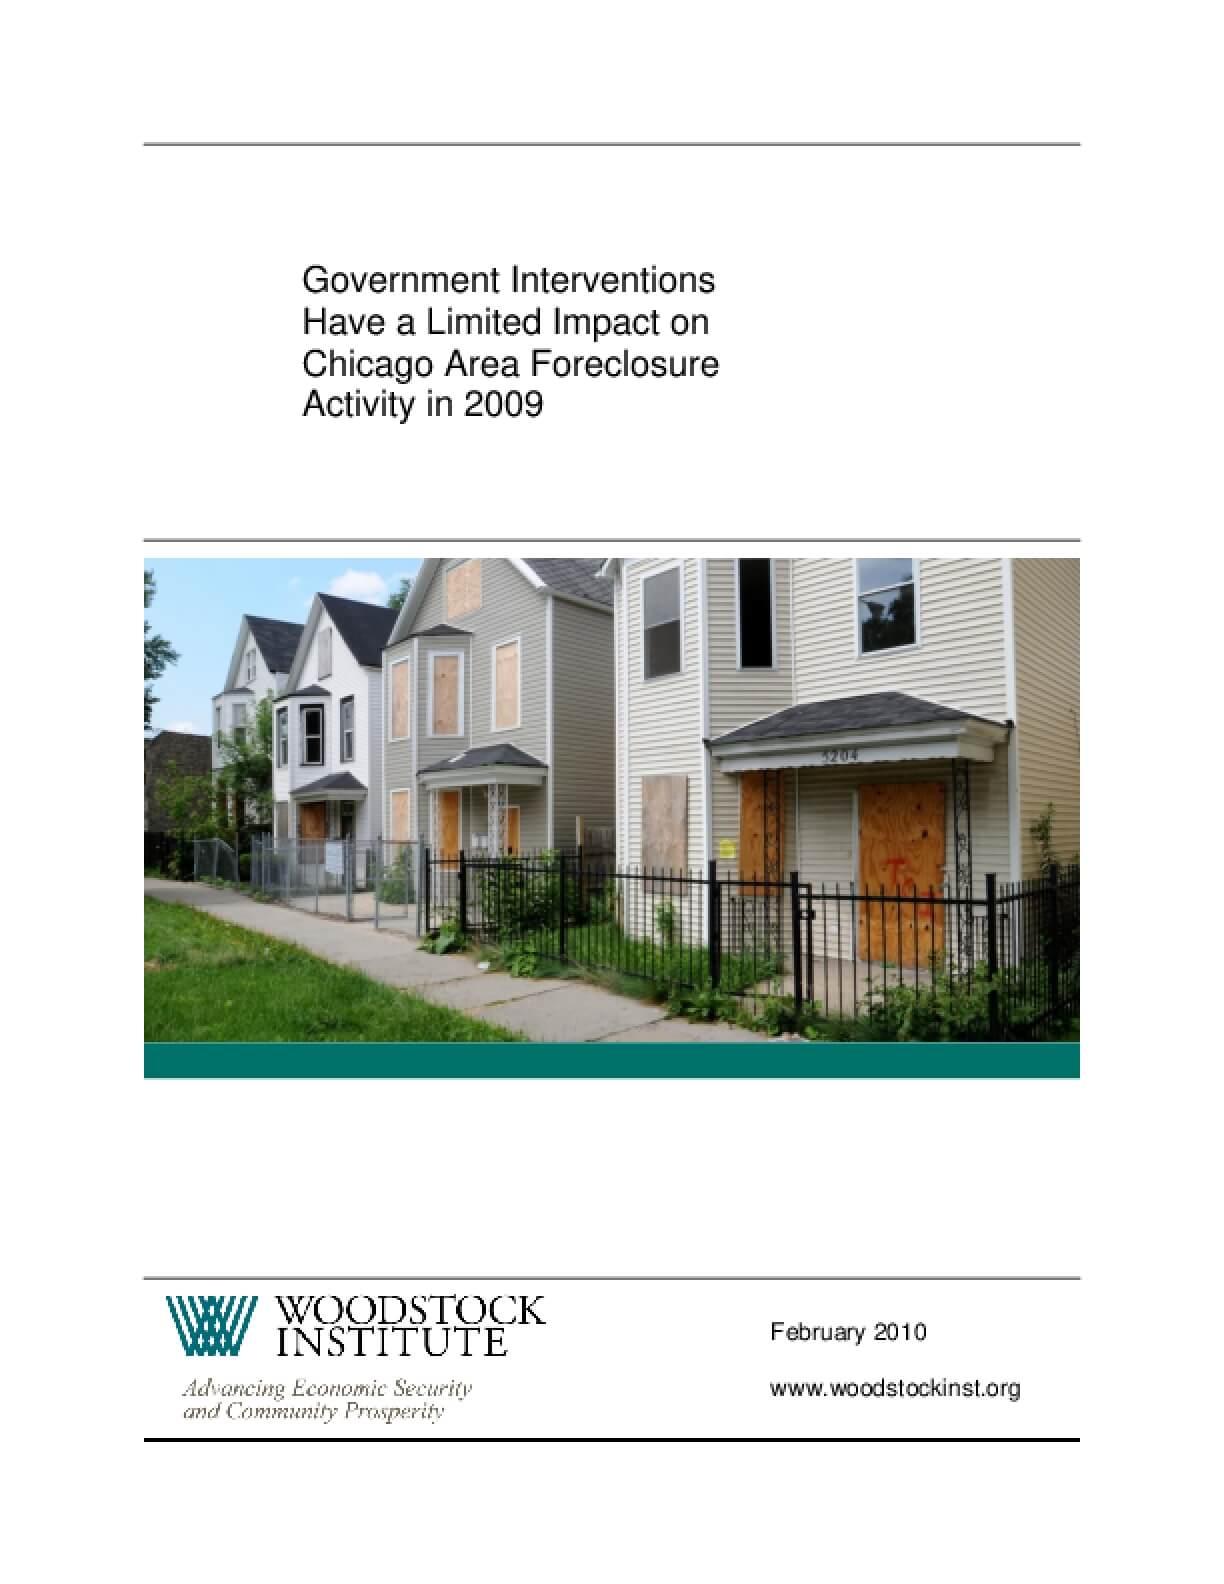 Government Interventions Have a Limited Impact on Chicago Area Foreclosure Activity in 2009